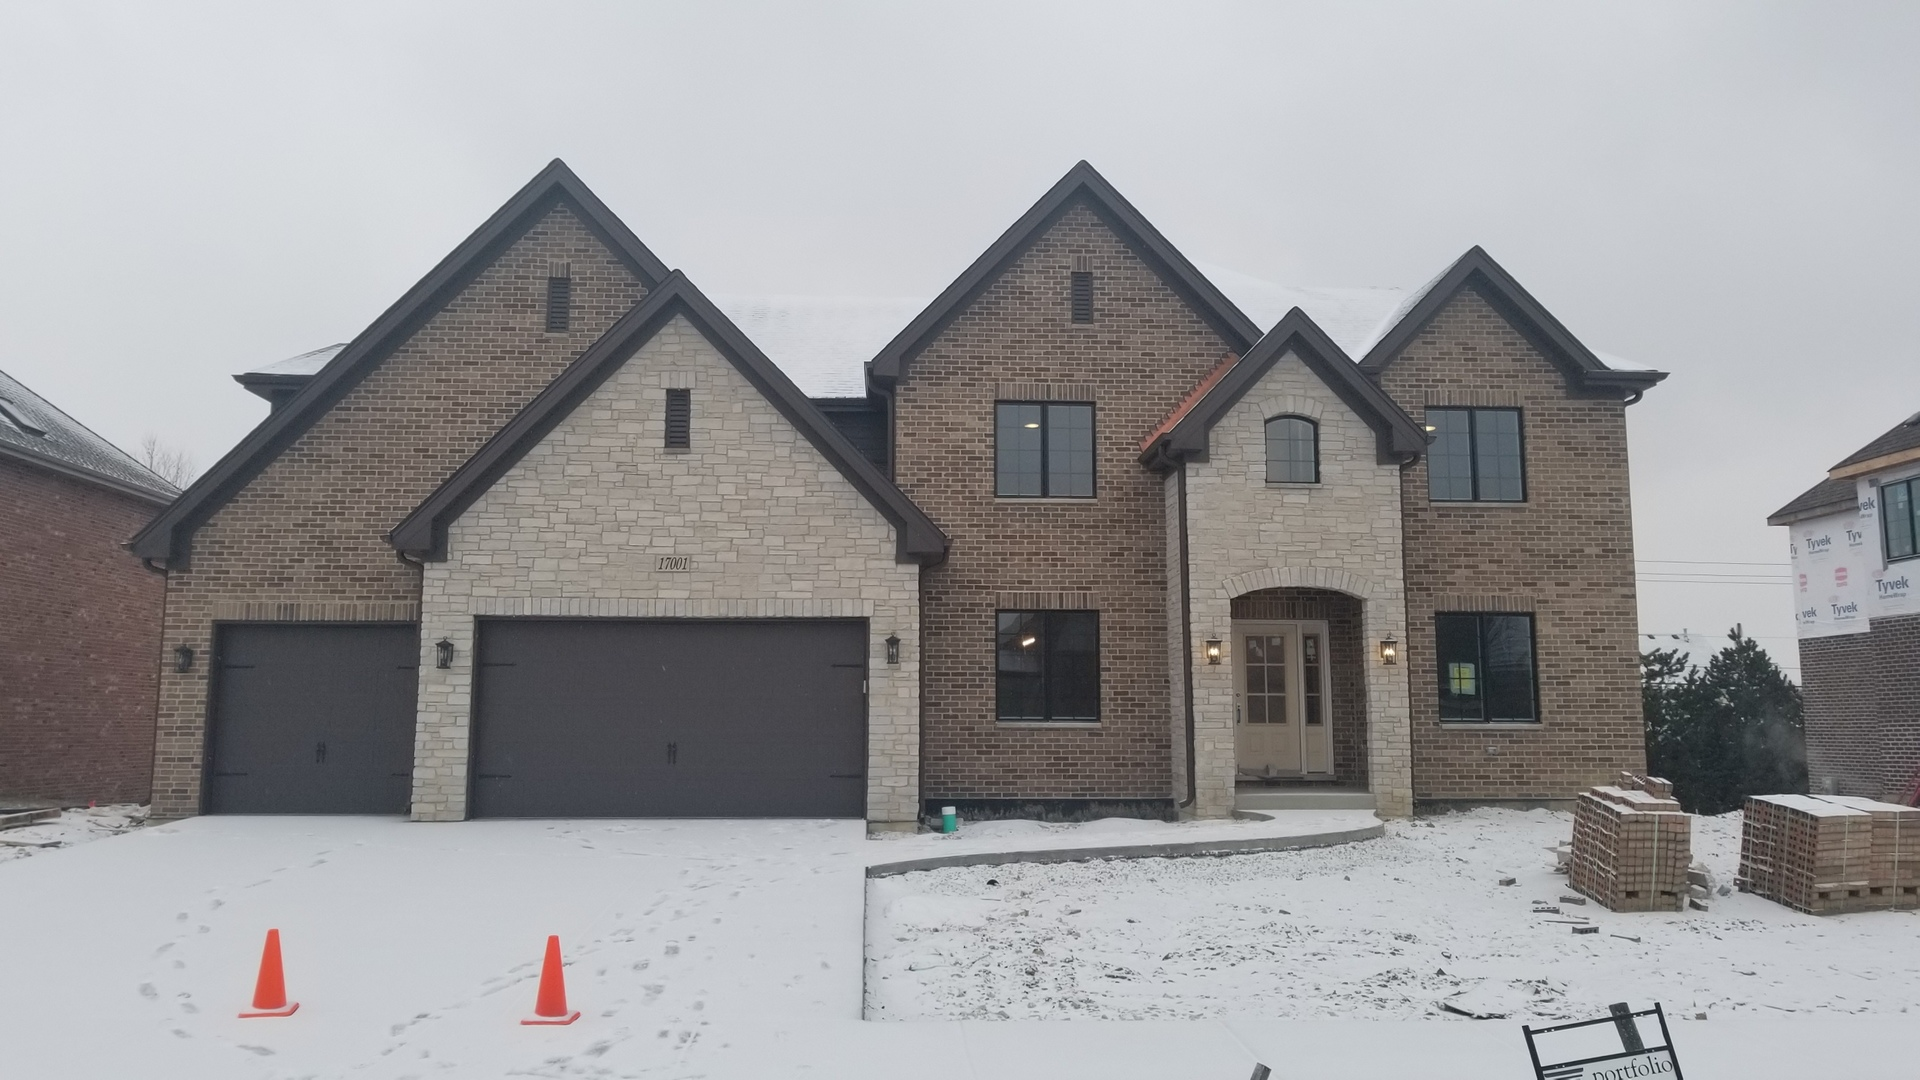 Property for sale at 17001 Sheridan'S Trail, Orland Park,  Il 60467